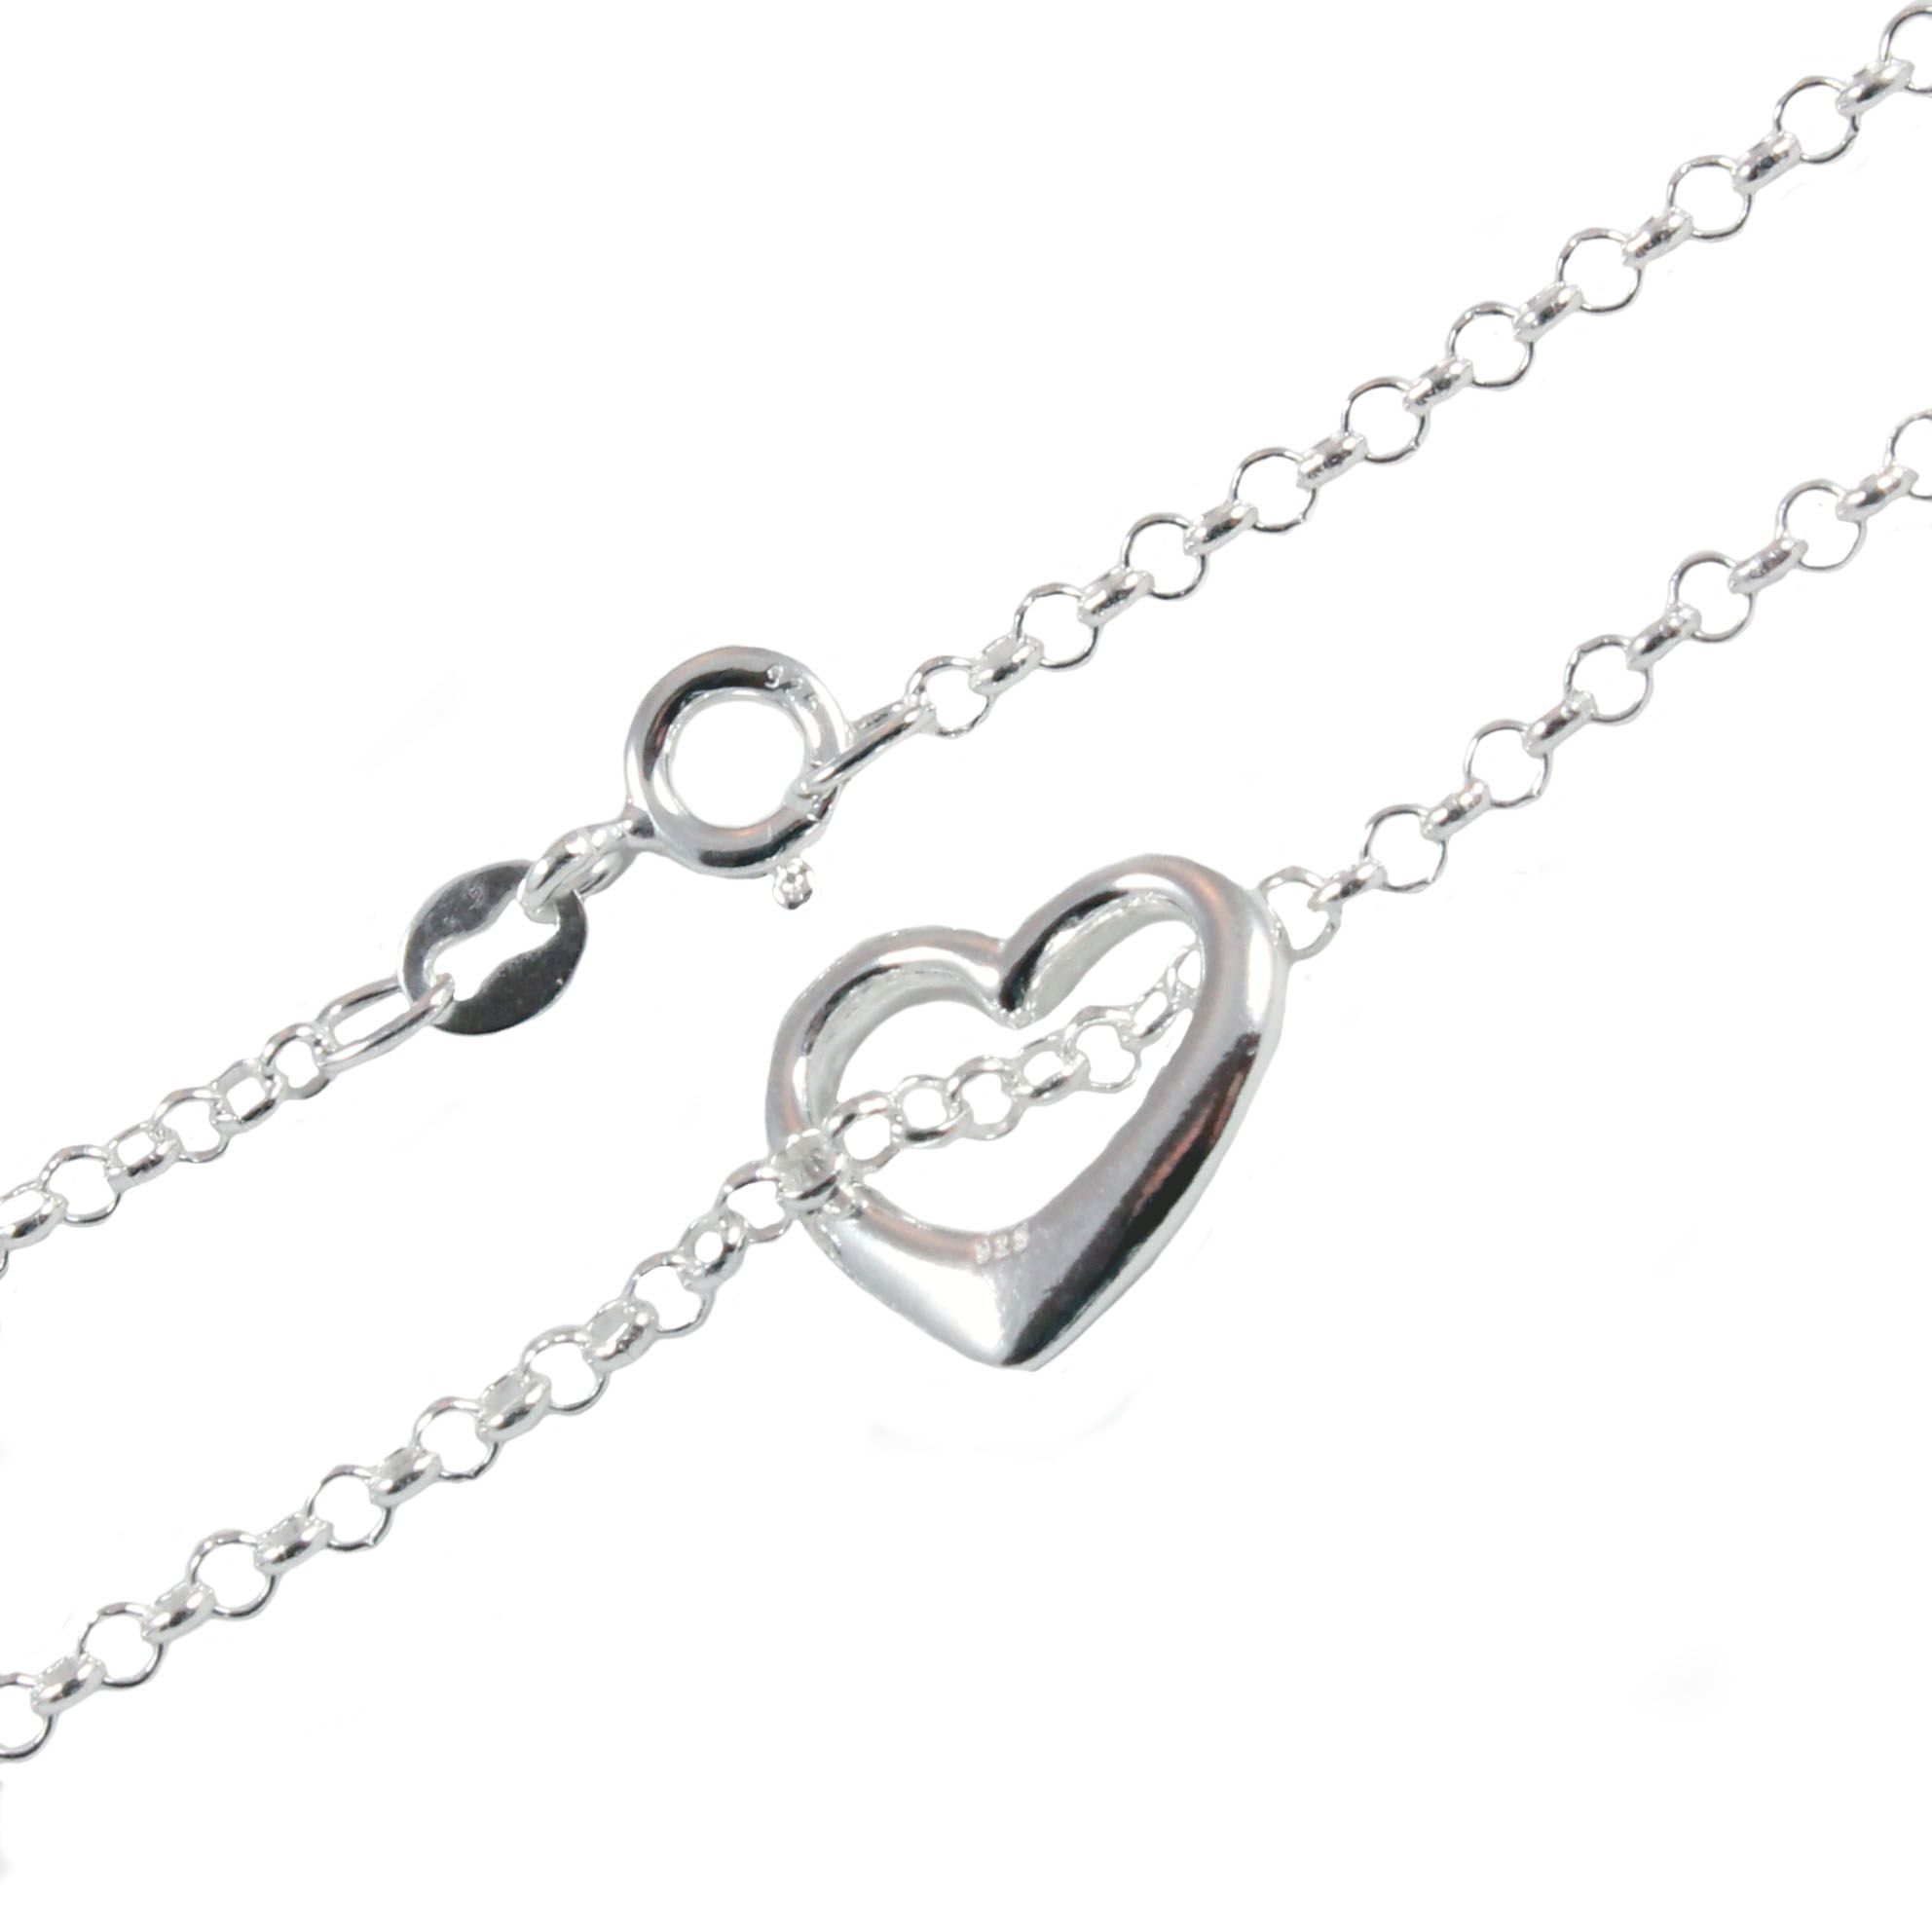 classic bracelet by crafted anklets zirconia and expert link heart in designed products shaped details brilliant is chain clr this ankle ca anklet a with silver cubic adorned sterling clear inlays romantic hand polished